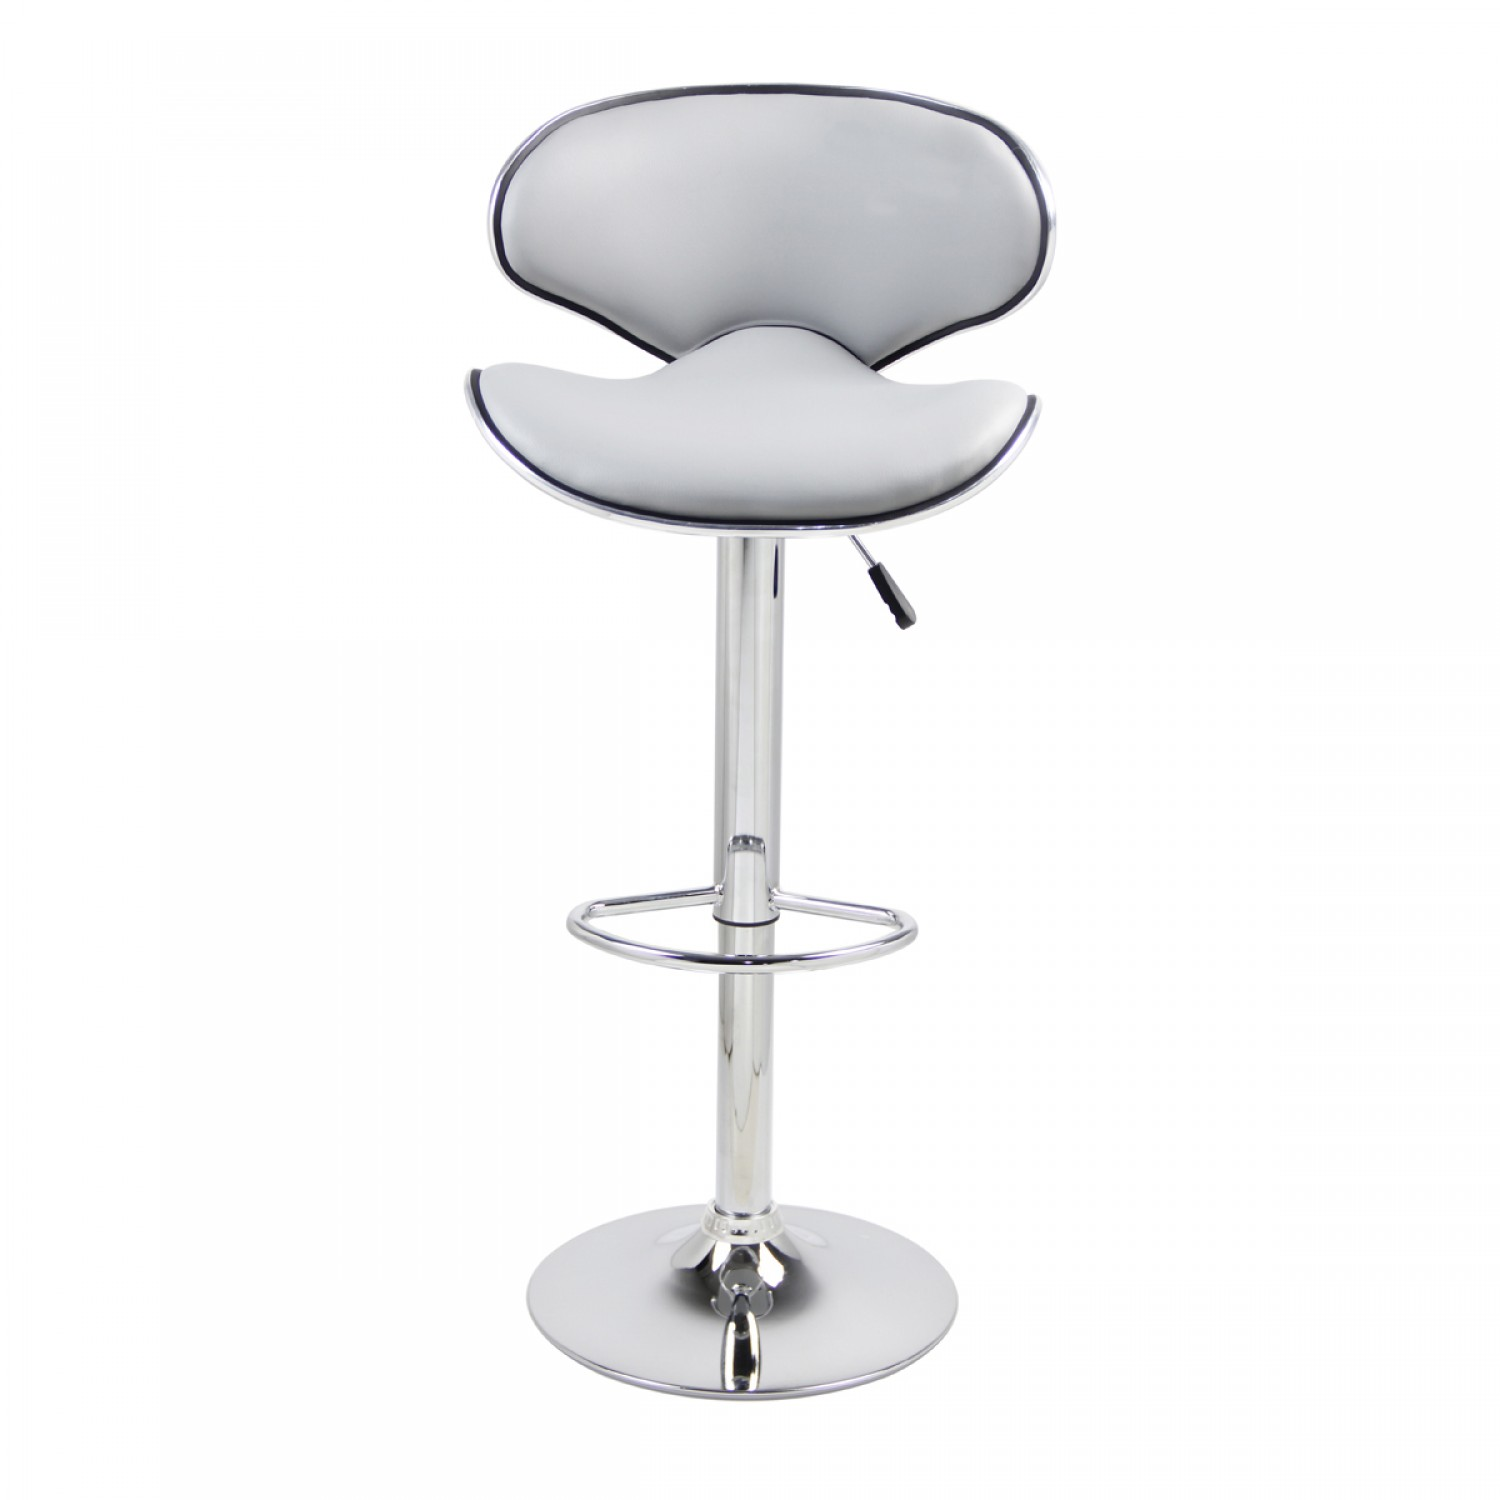 Charly Lot De 2 Tabourets De Bar Noirs Tabouret De Bar Gris Lot De 2 Tabourets De Bar Colorado Gris